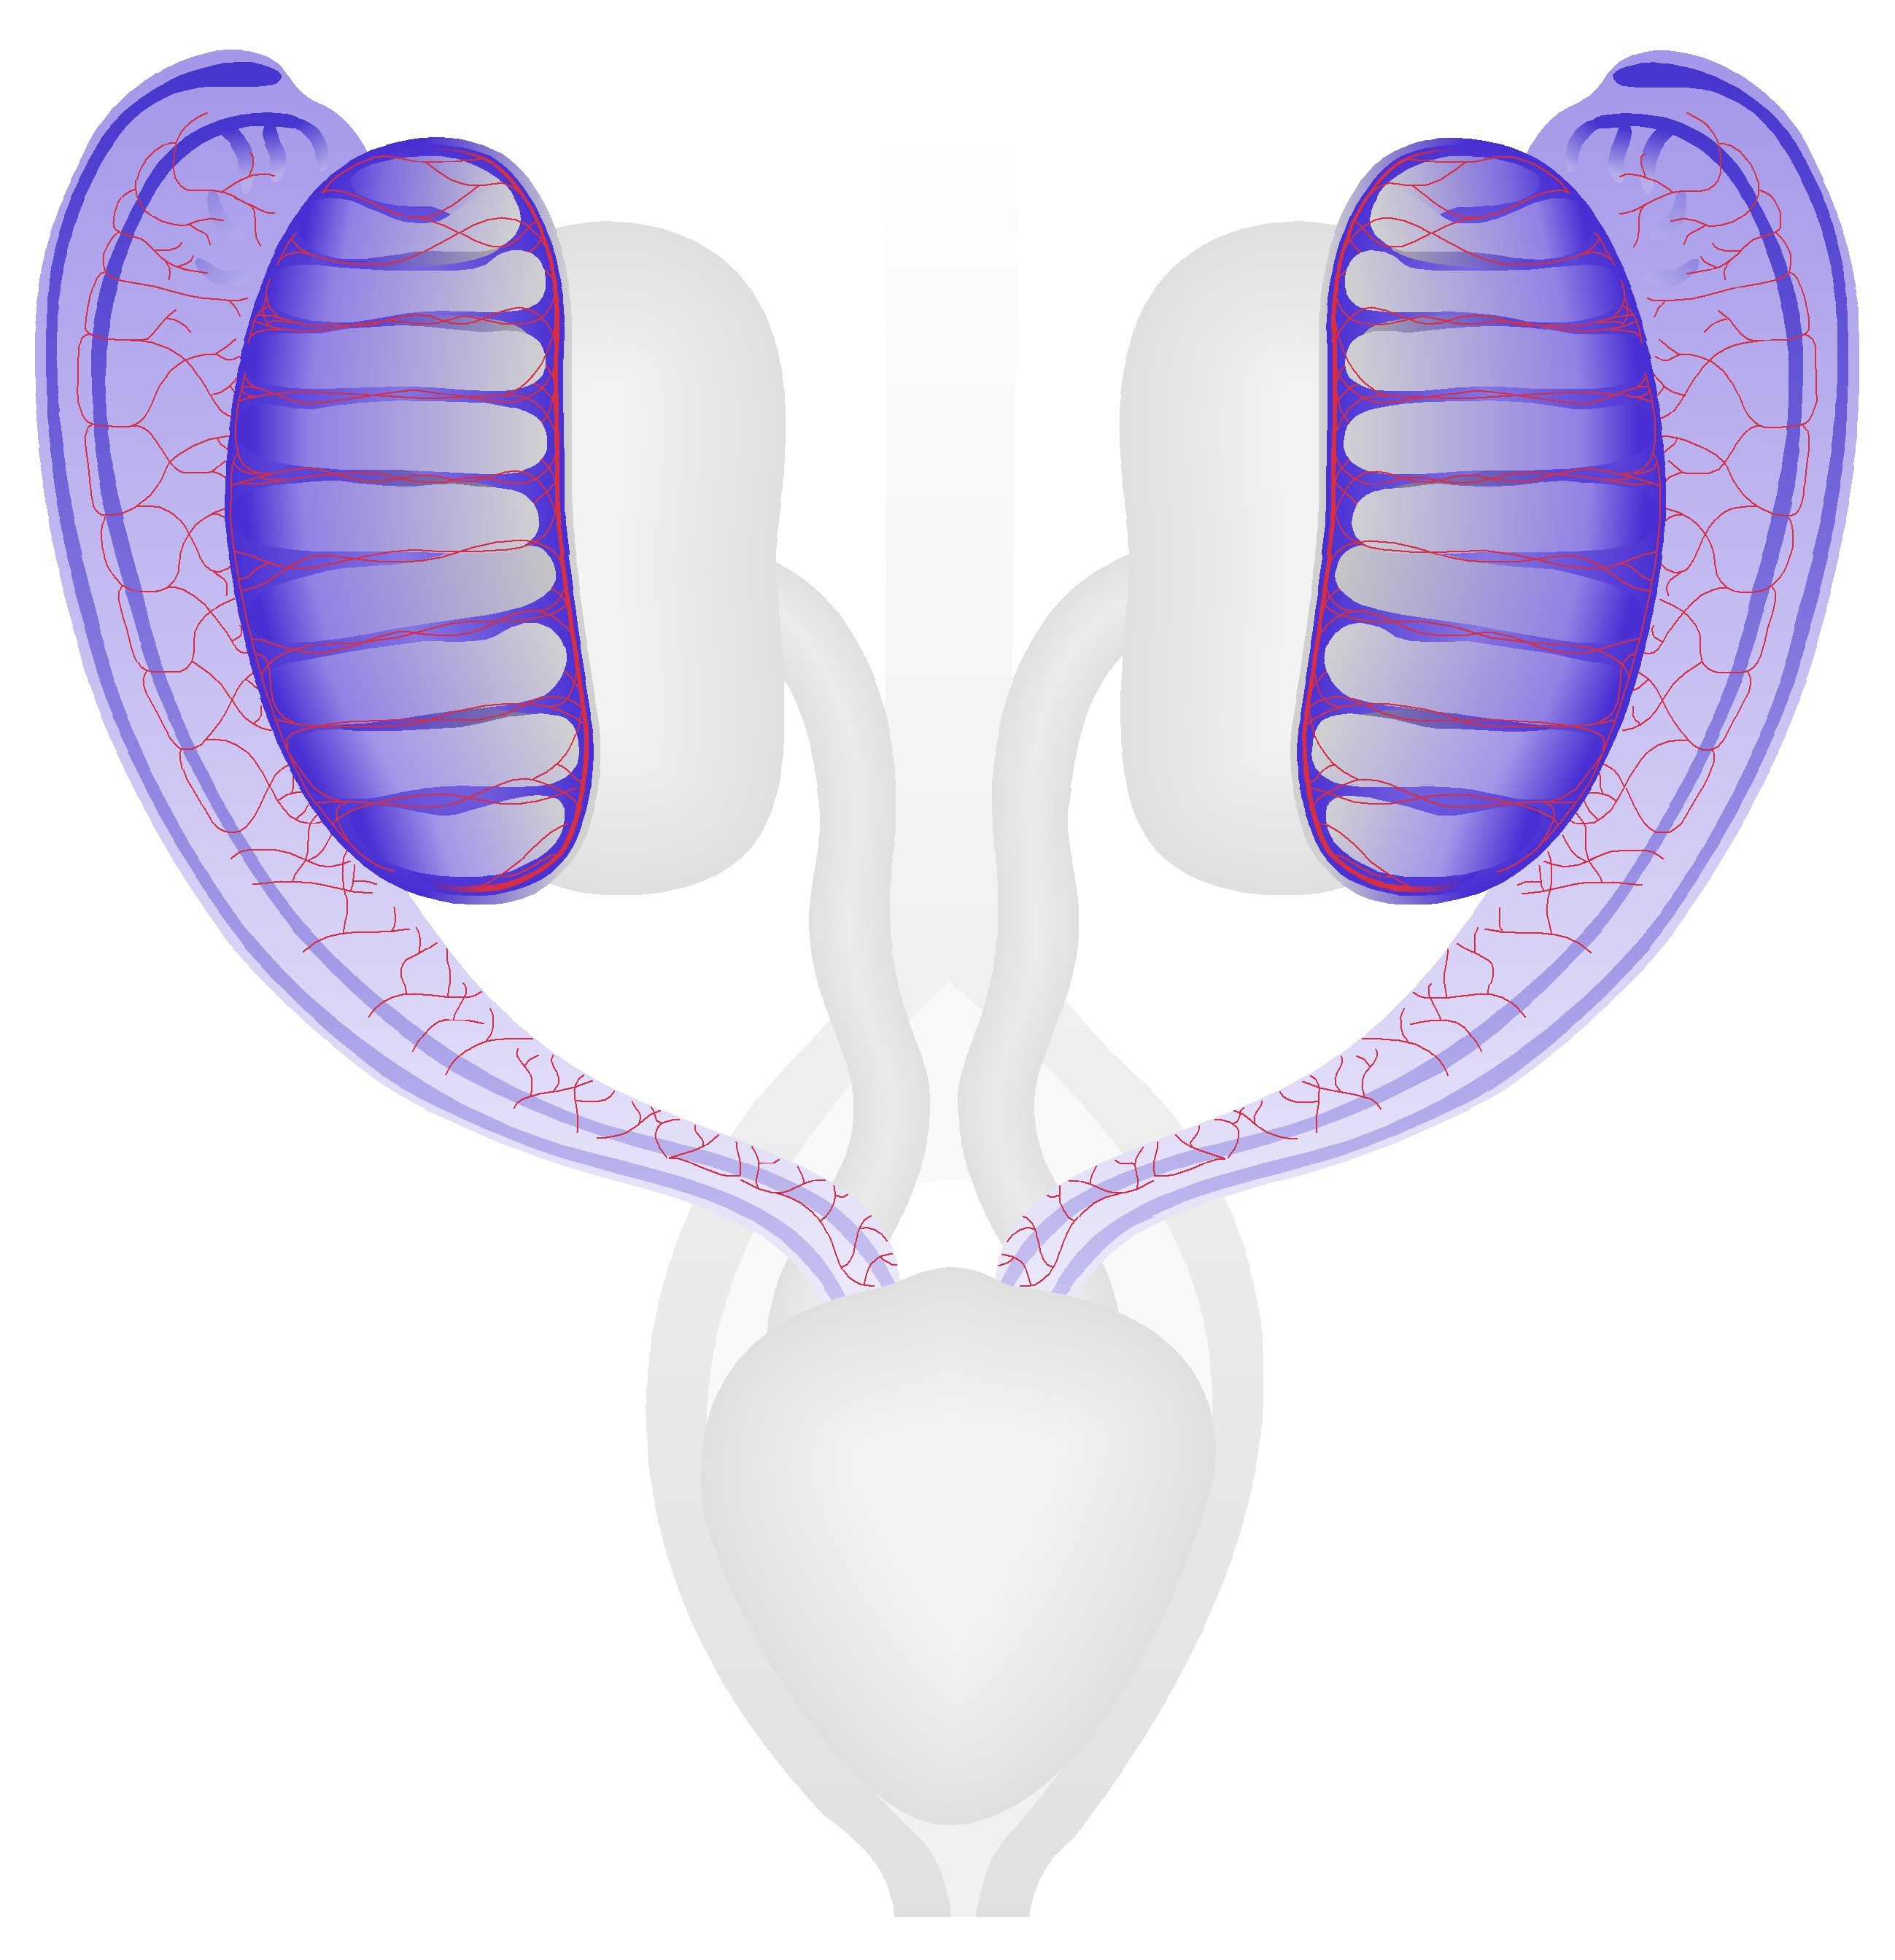 Male Reproductive System at TS21 (13 dpc)